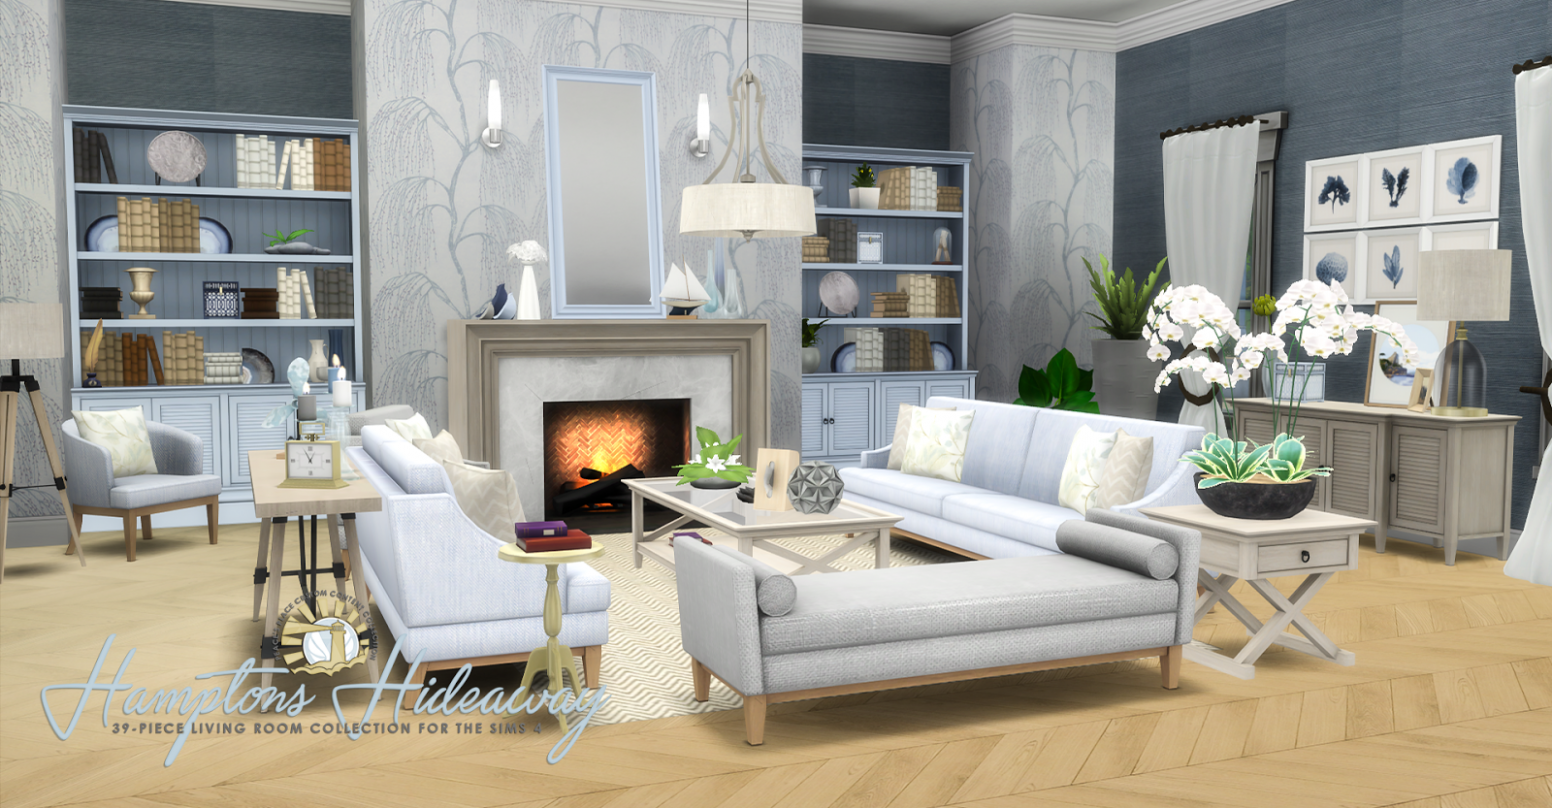 Hamptons Hideaway - Living Room Set for TS9 | Living room sims 9 ..